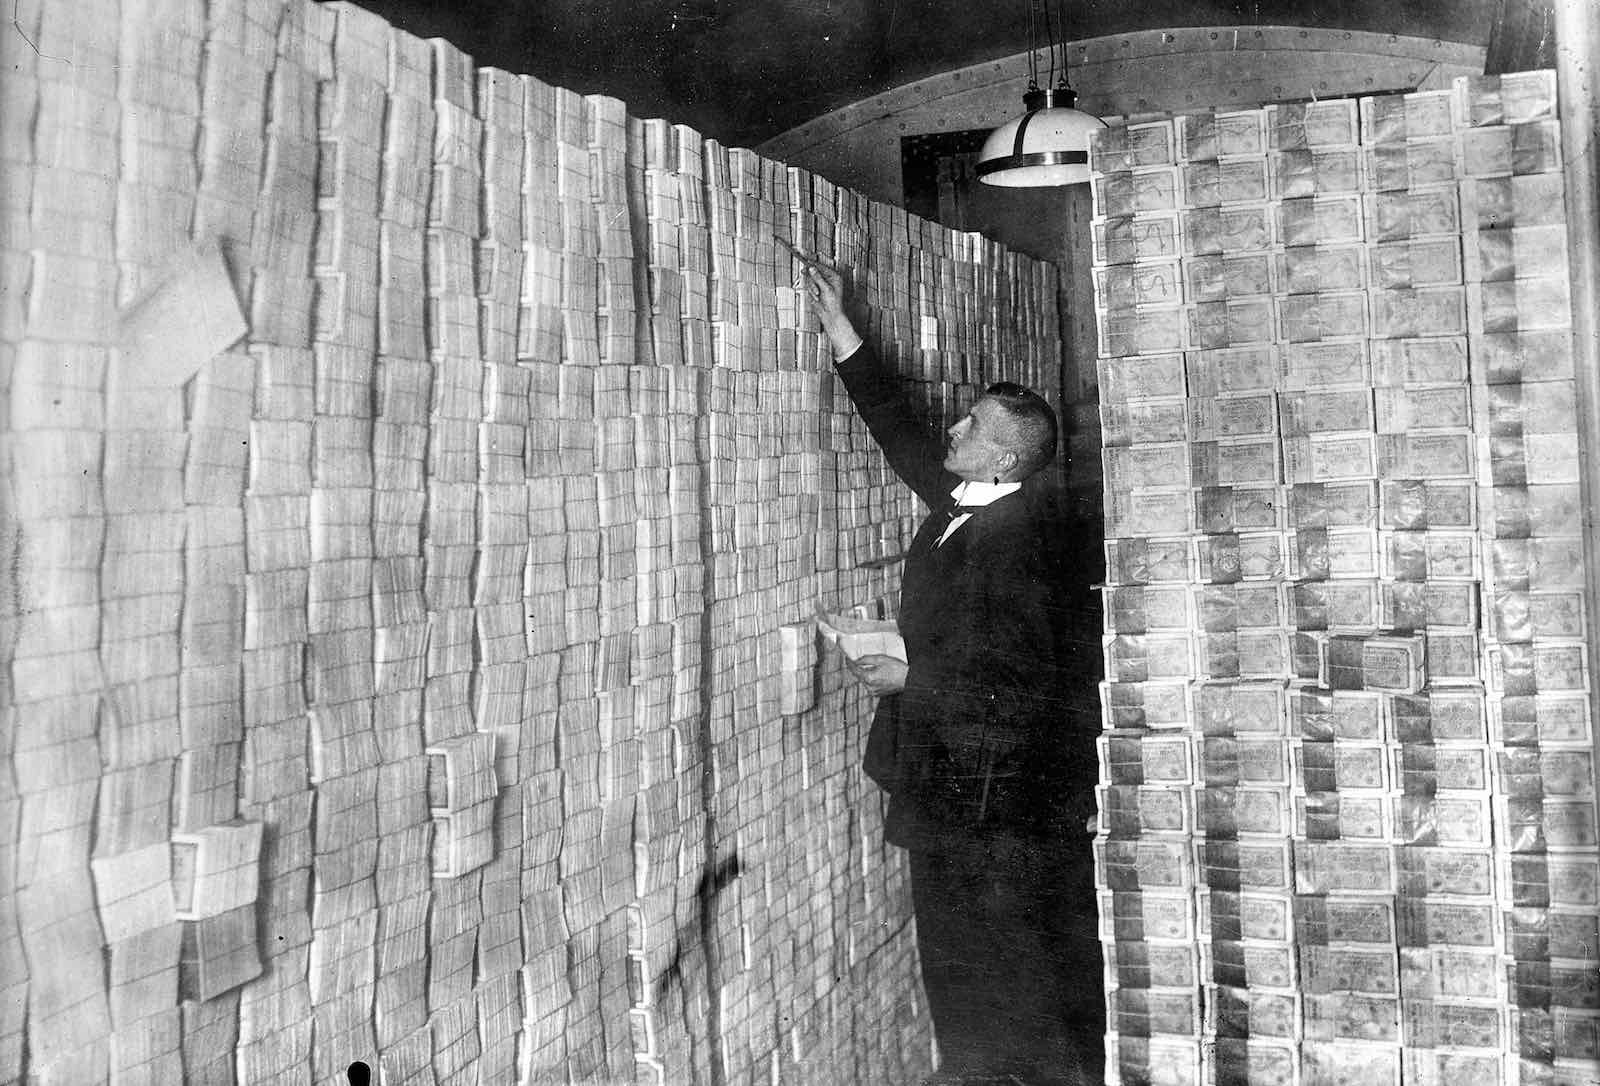 A basement of a bank full of banknotes in Weimar Republic days (Photo: Albert Harlingue/Roger Viollet via Getty Images)